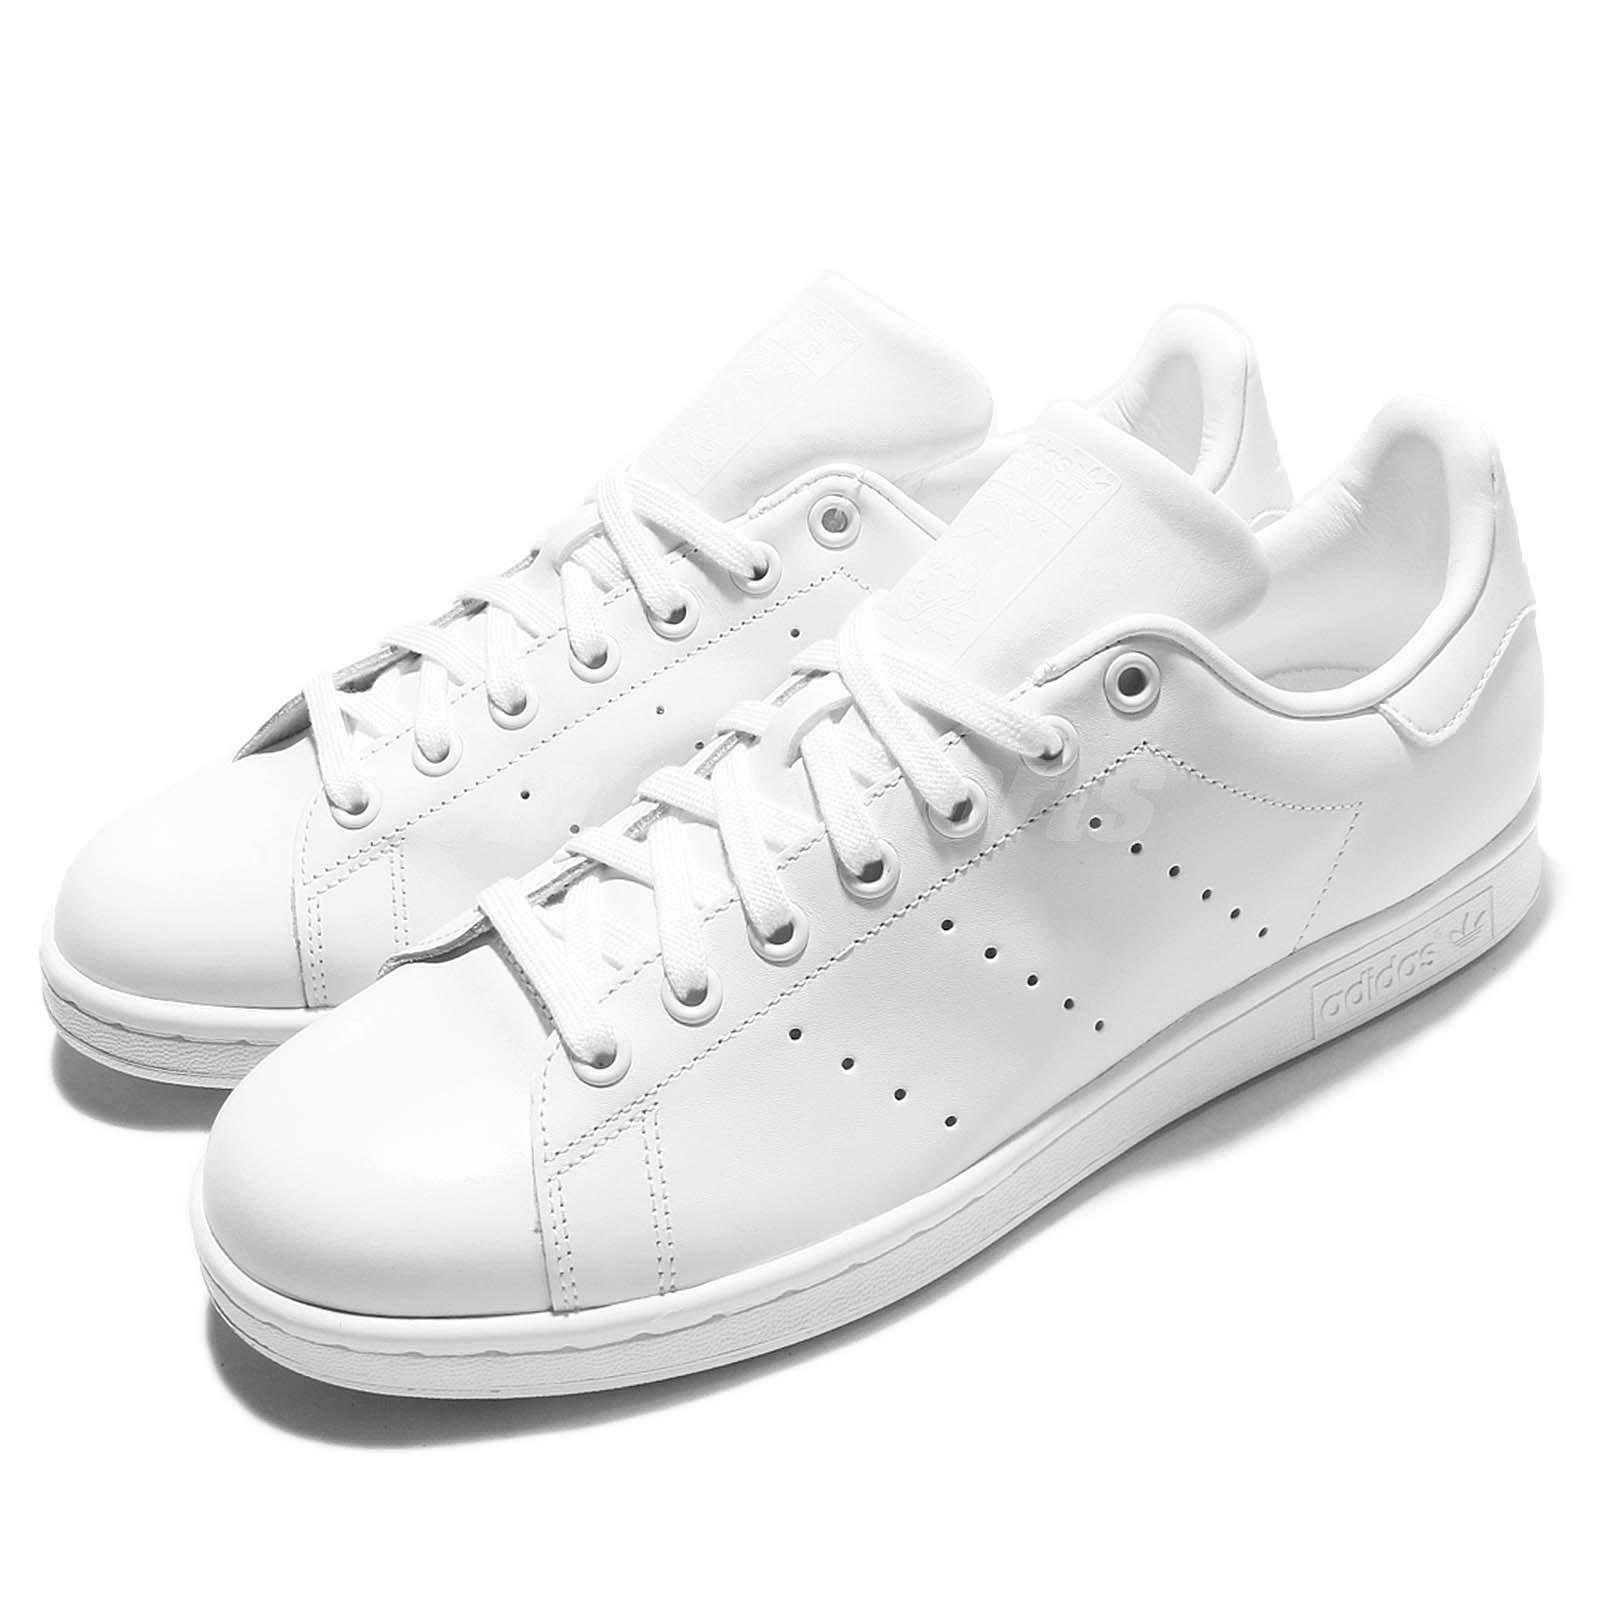 adidas Originals Superstar 80s Mens Classic Lifestyle Pick Shoes Sneakers Pick Lifestyle 1 78bc2d